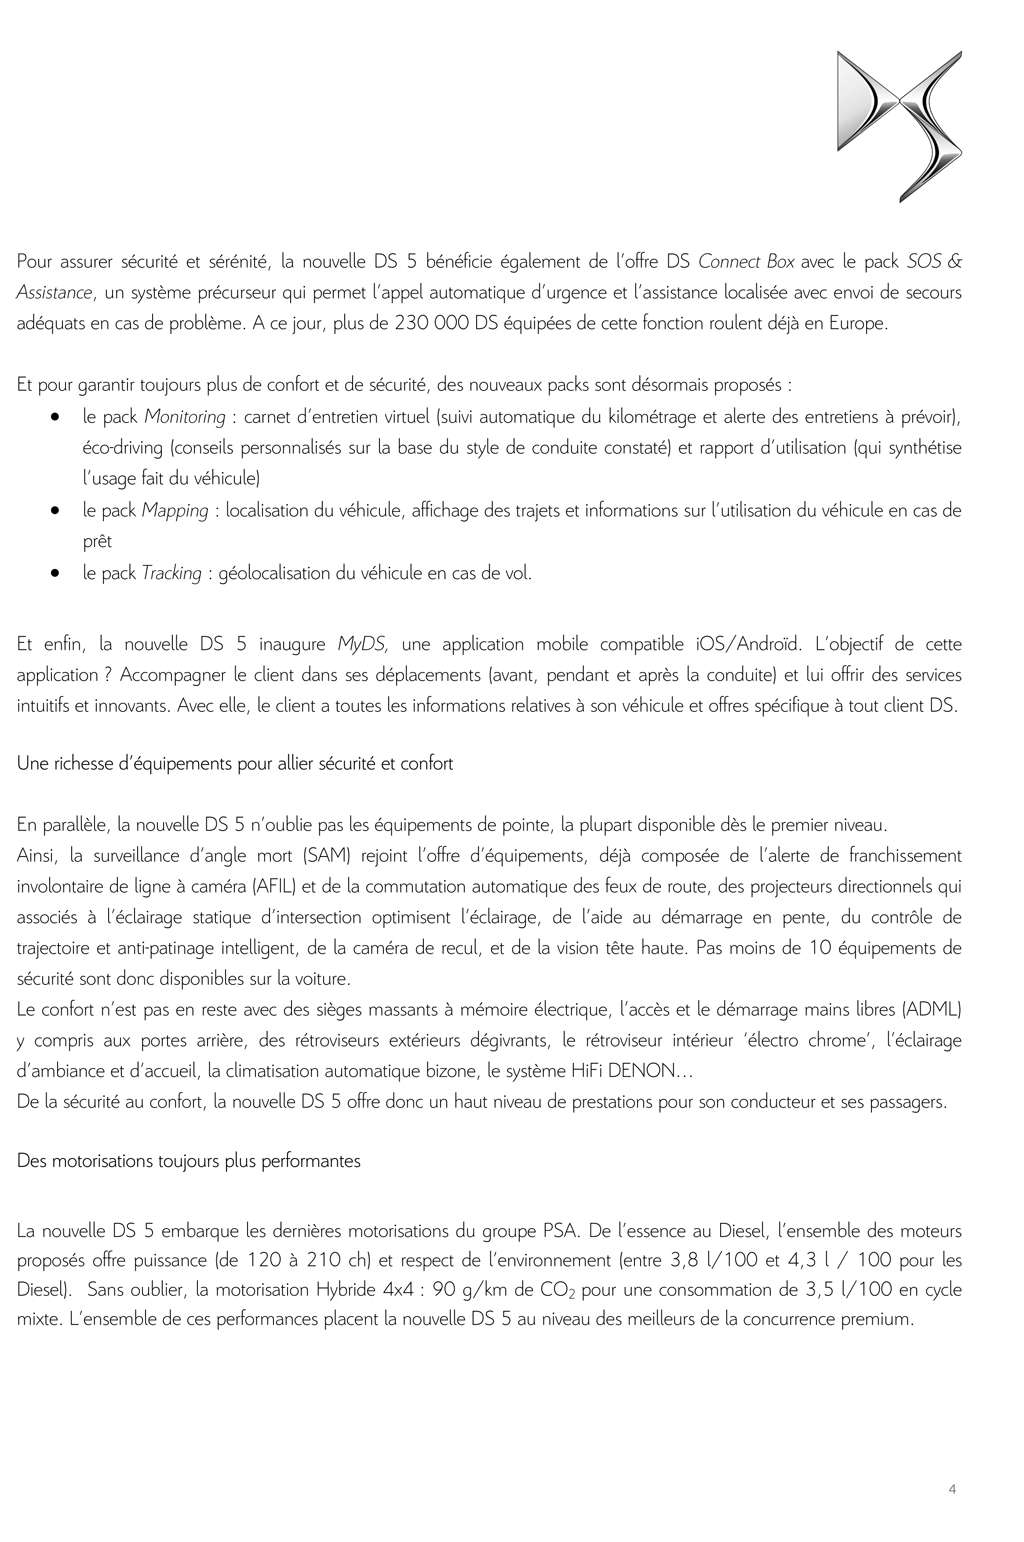 [SUJET OFFICIEL] DS 5 restylée (photos officielles p.16) - Page 10 Dp_ds_13